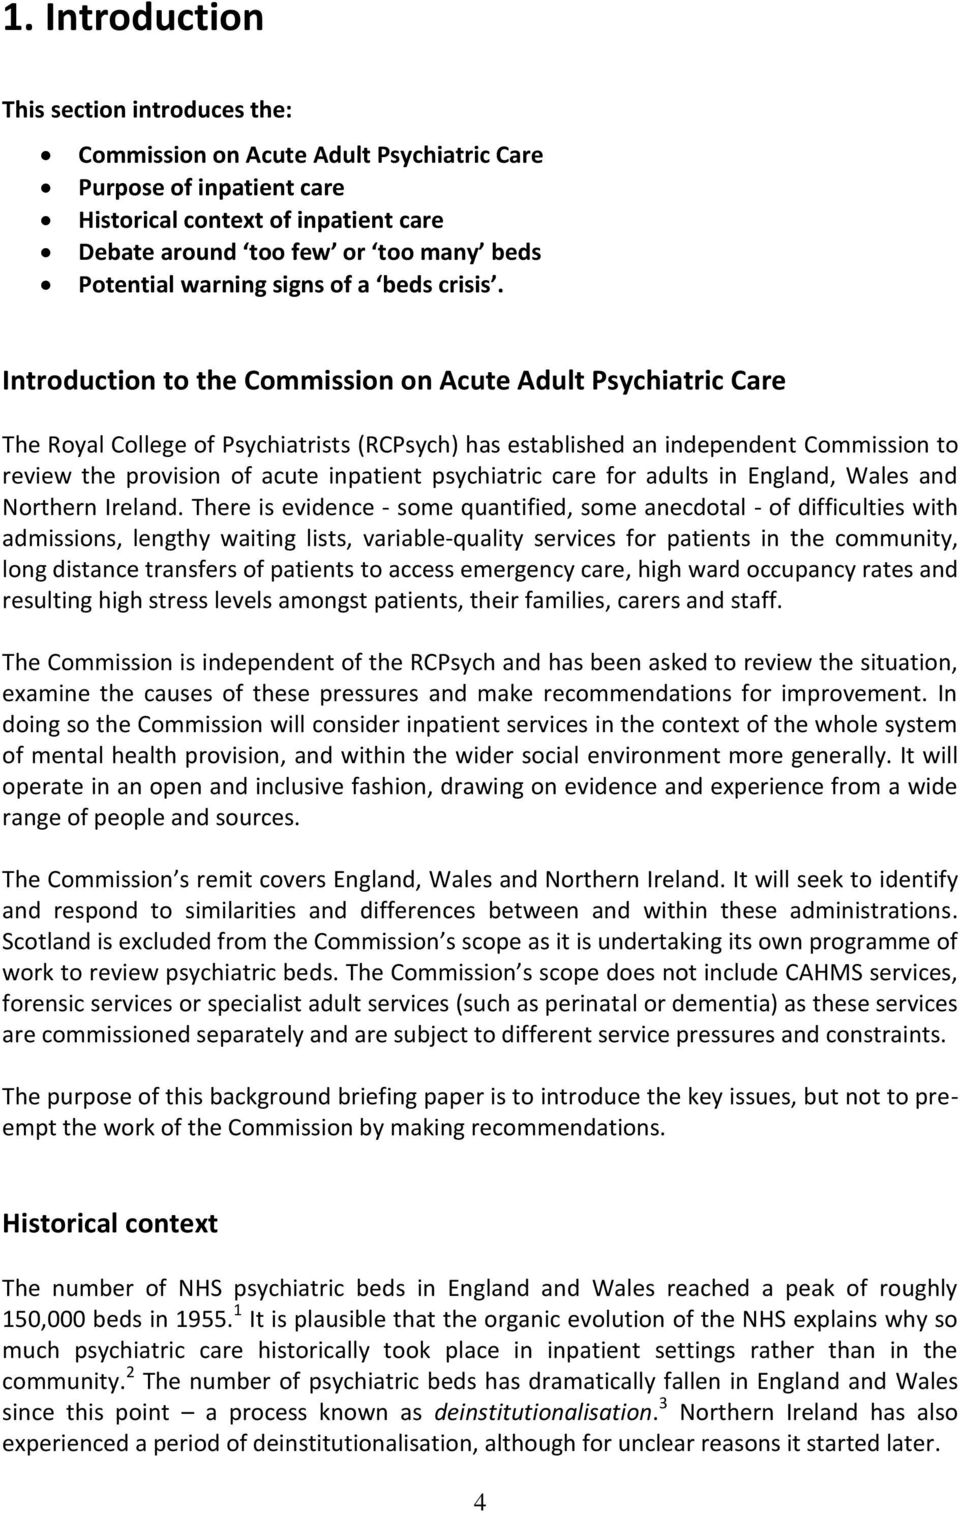 Introduction to the Commission on Acute Adult Psychiatric Care The Royal College of Psychiatrists (RCPsych) has established an independent Commission to review the provision of acute inpatient